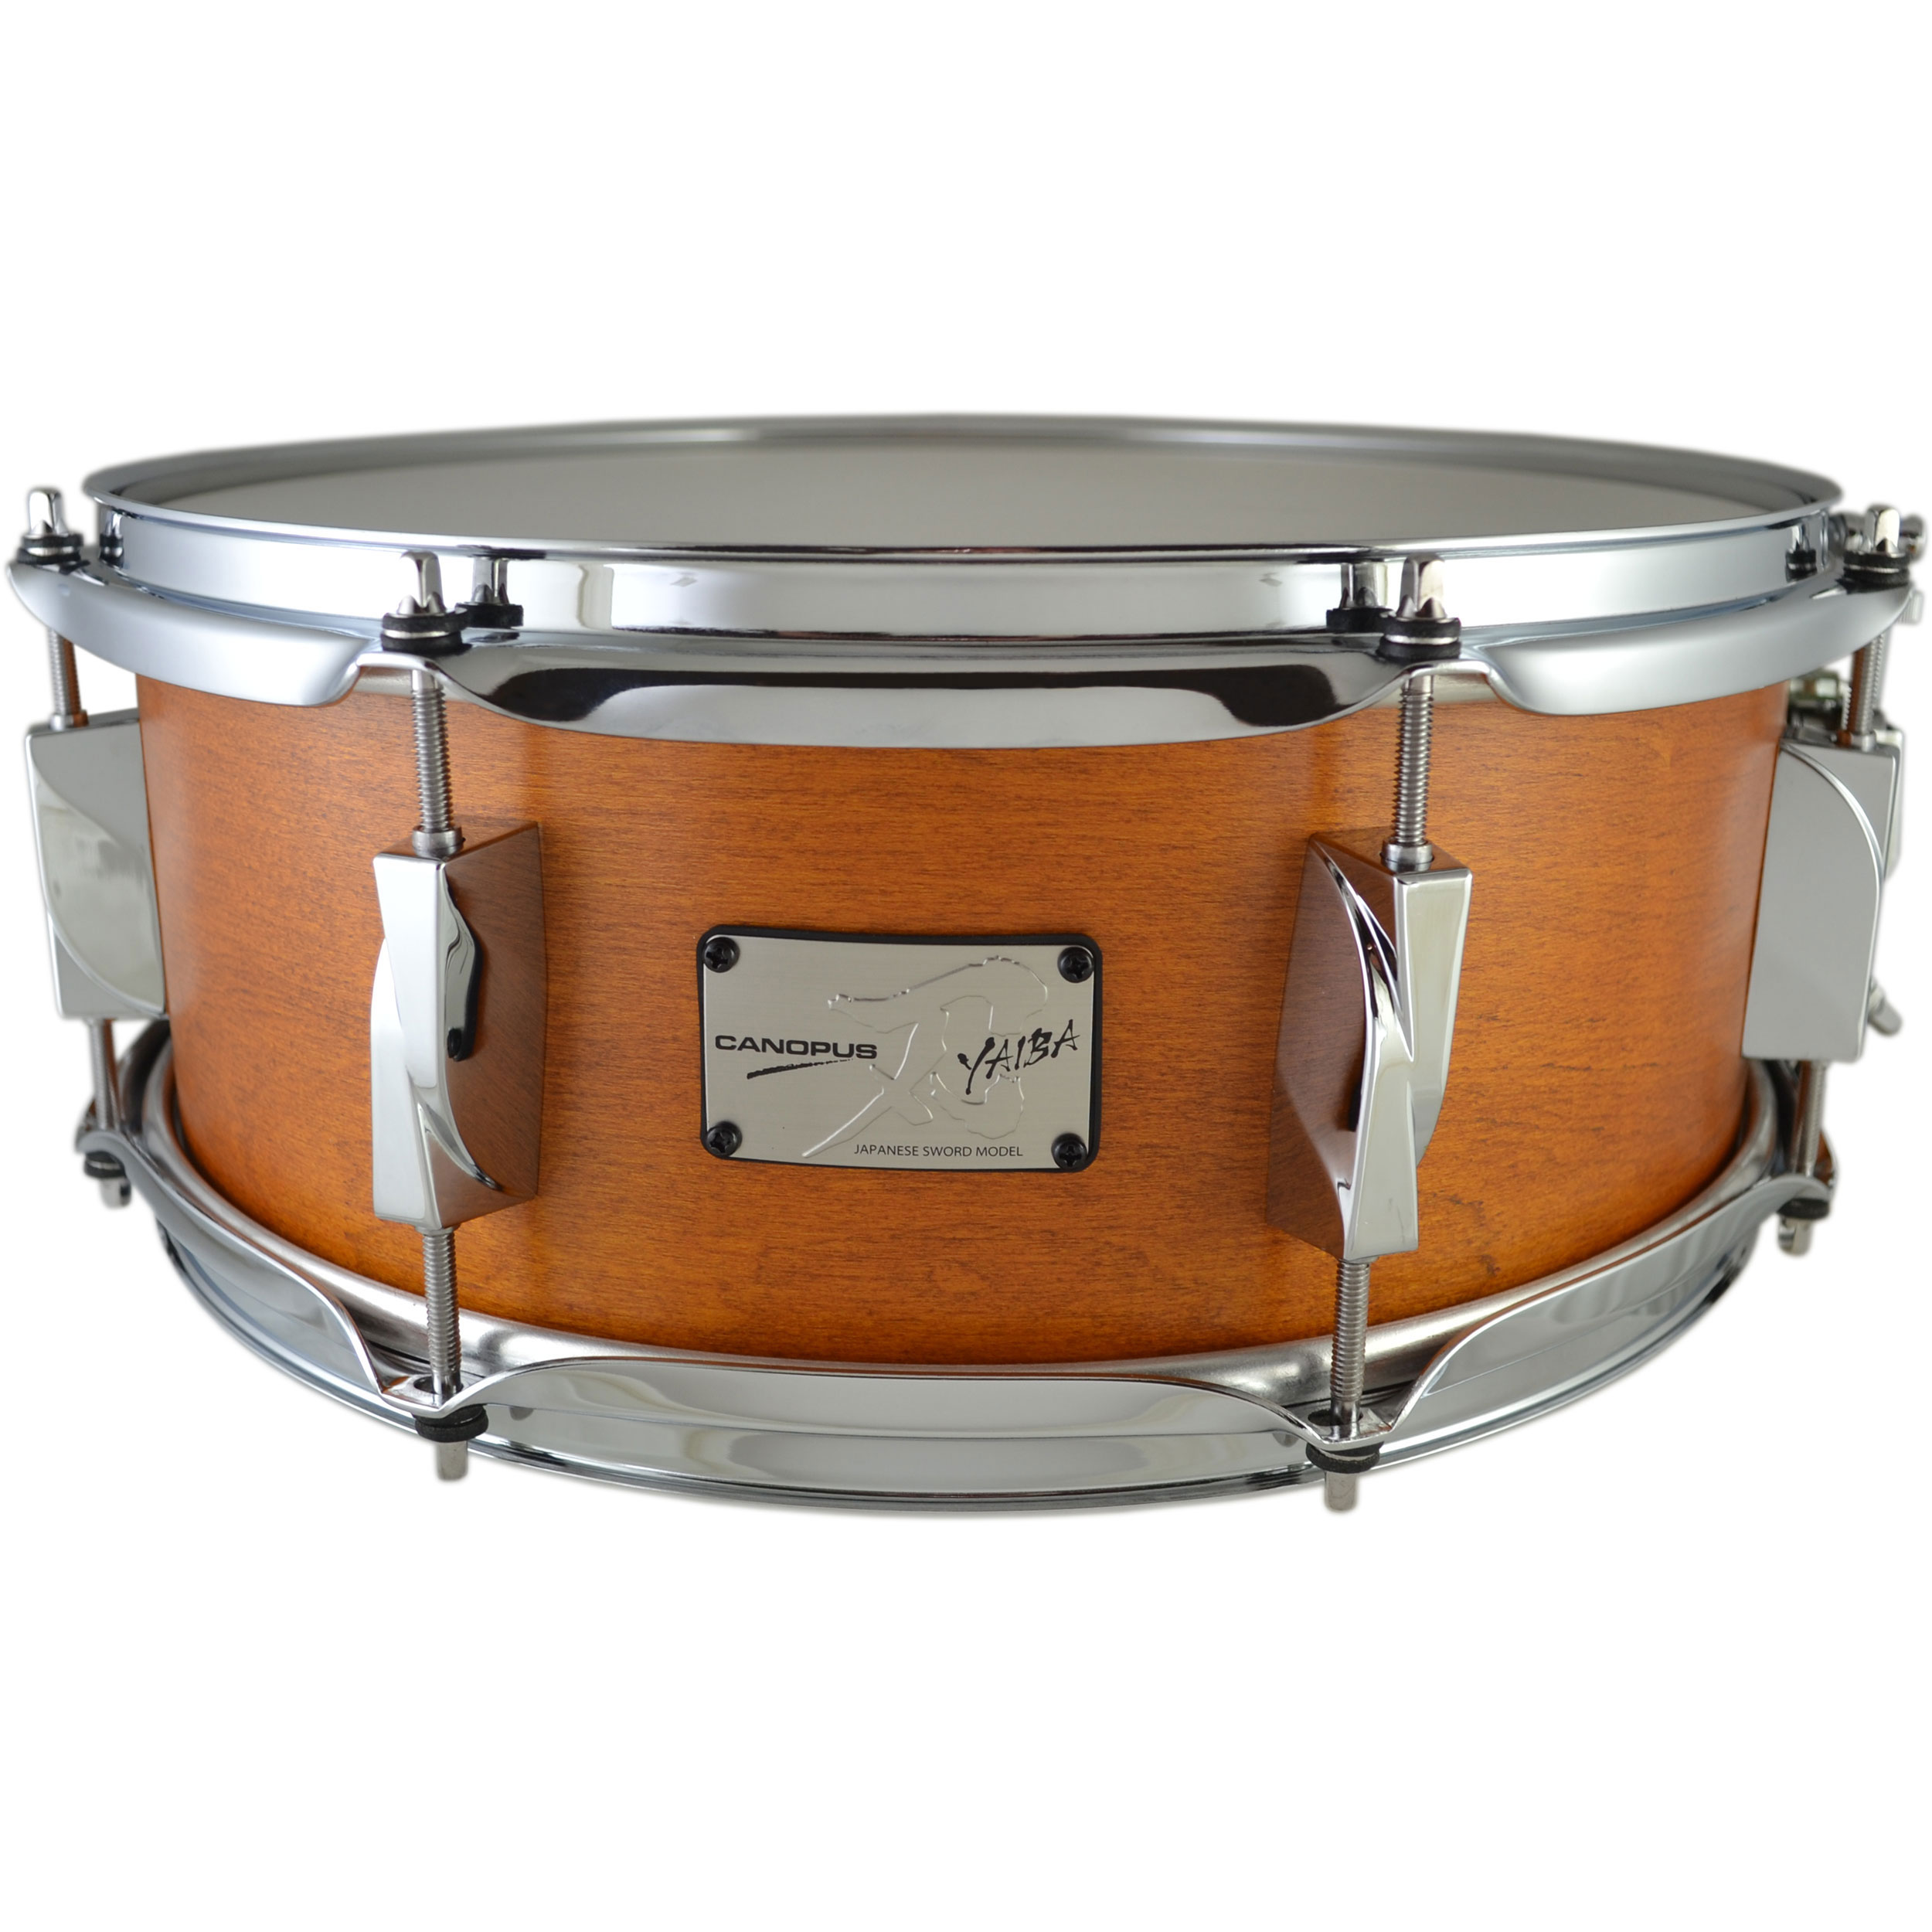 "Canopus 5.5"" x 14"" Yaiba II Maple Snare Drum"